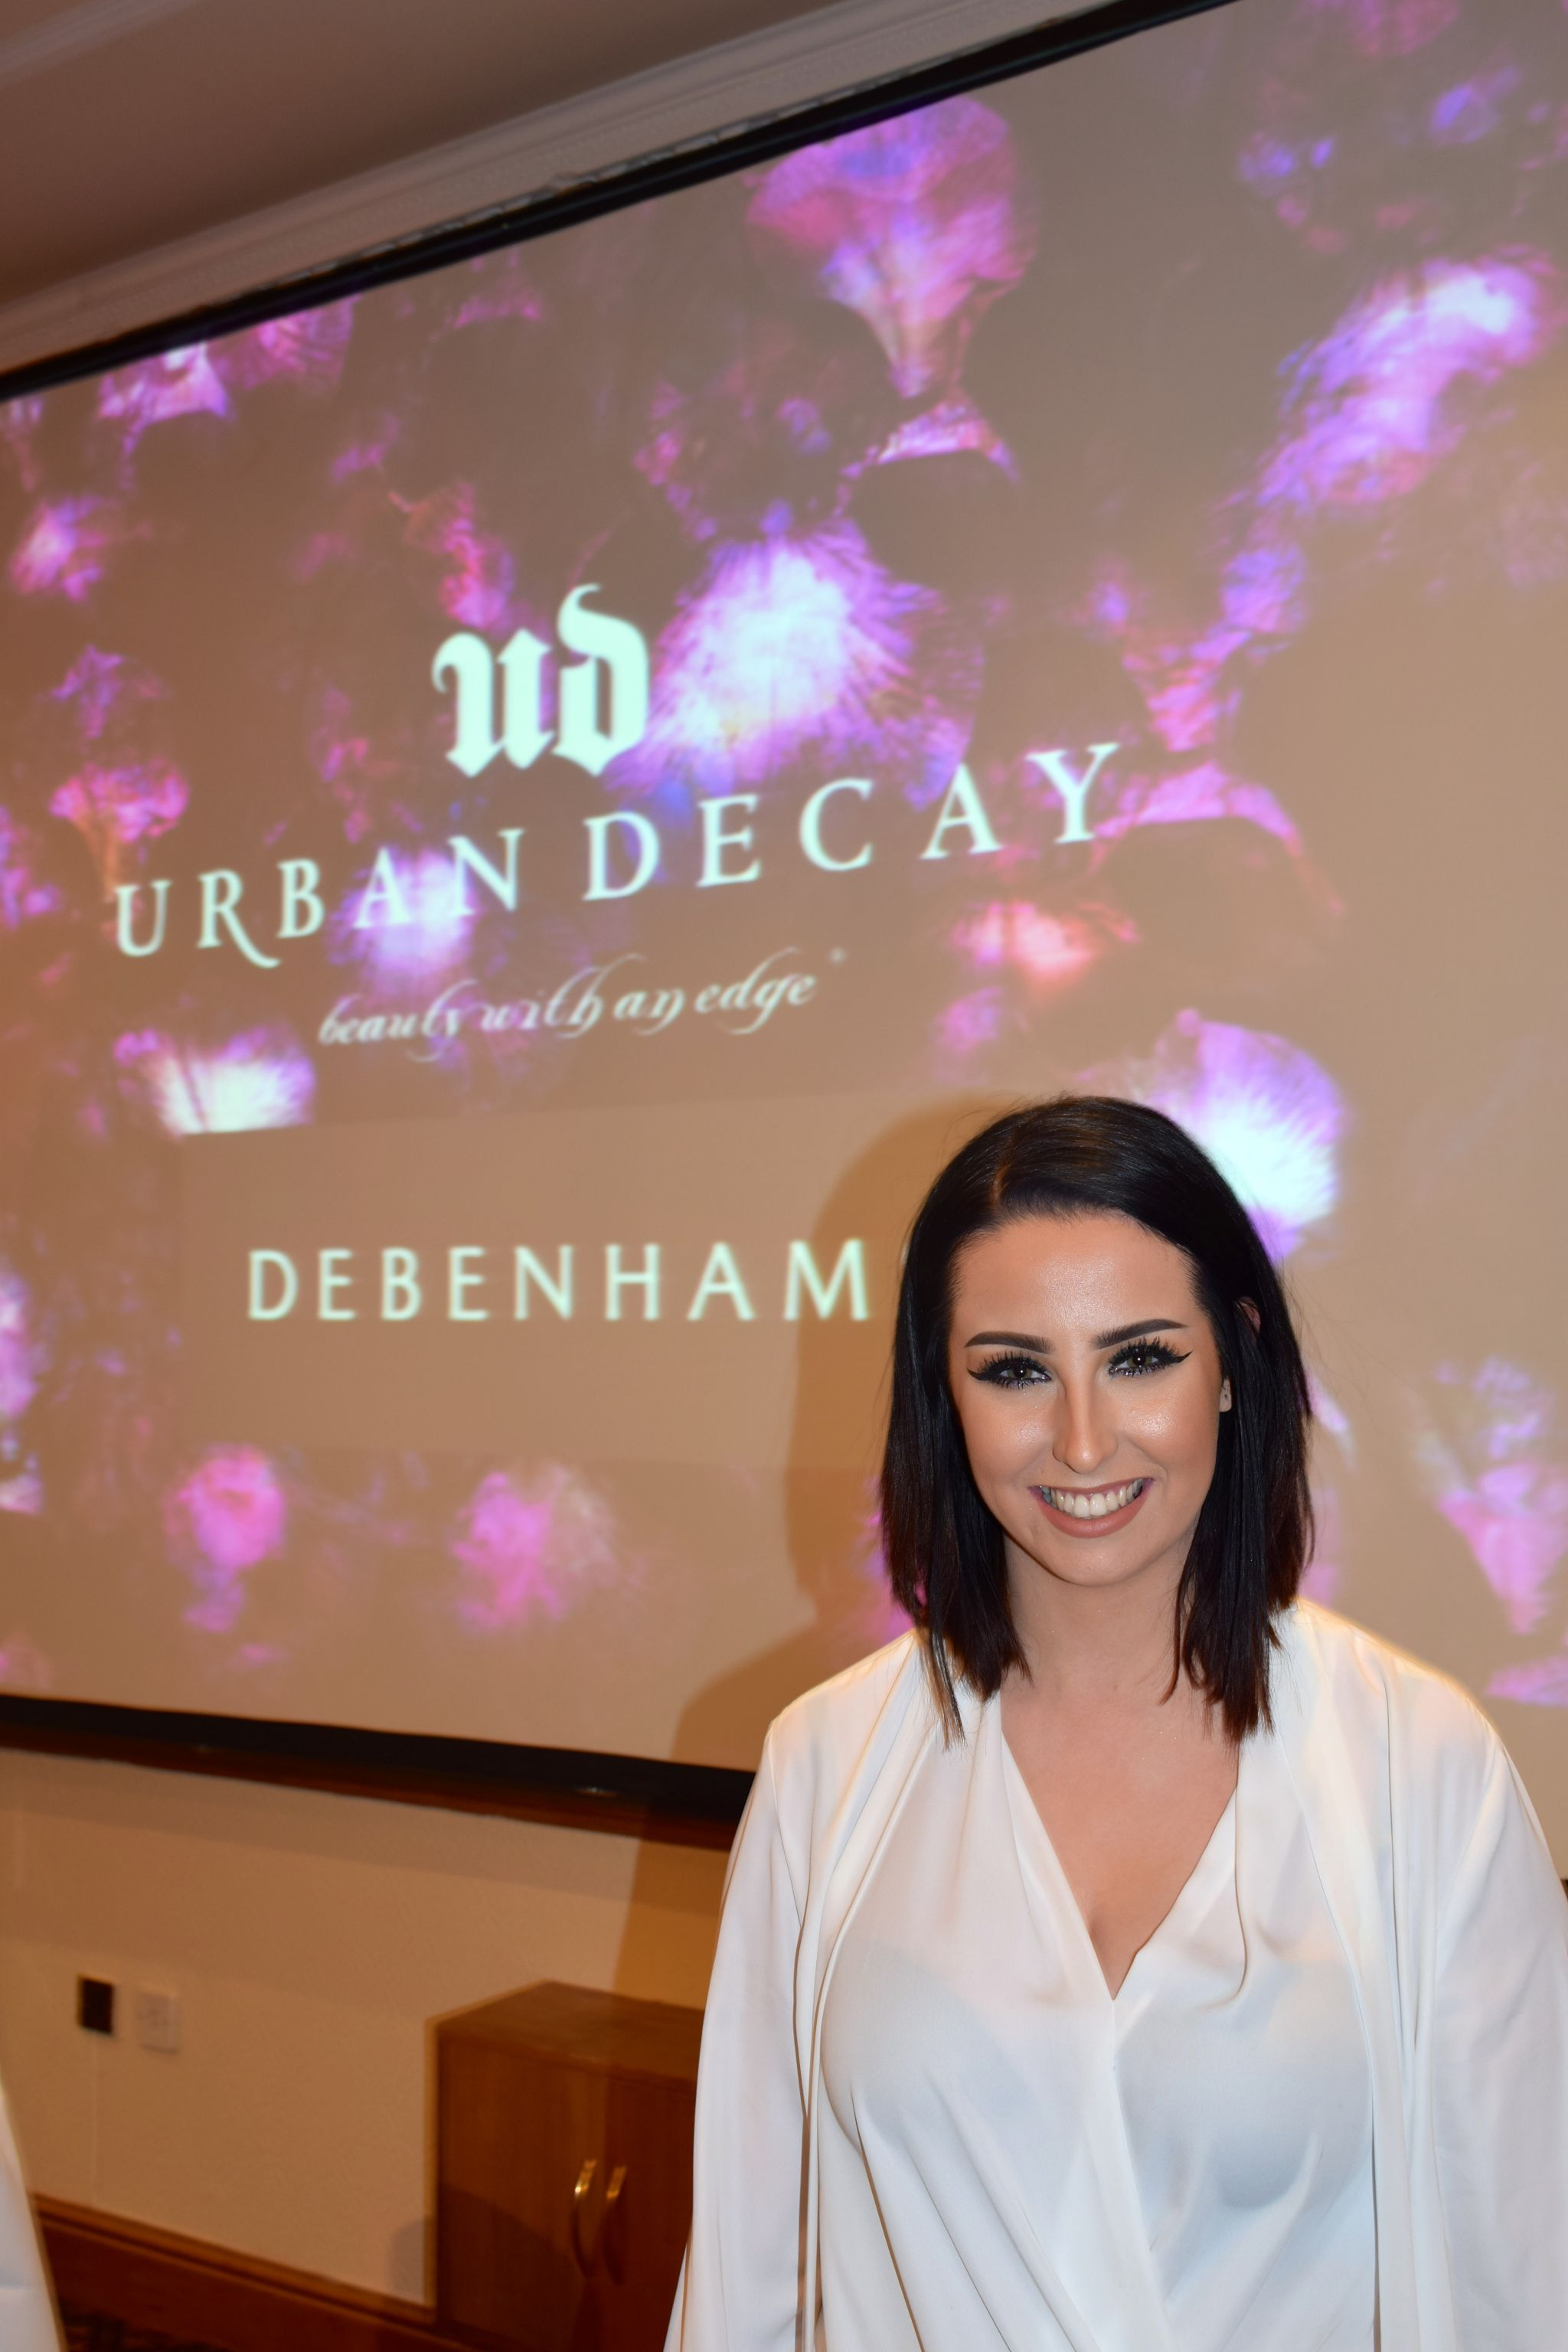 Urban Decay, Debenhams & The Roxburghe Hotel 8